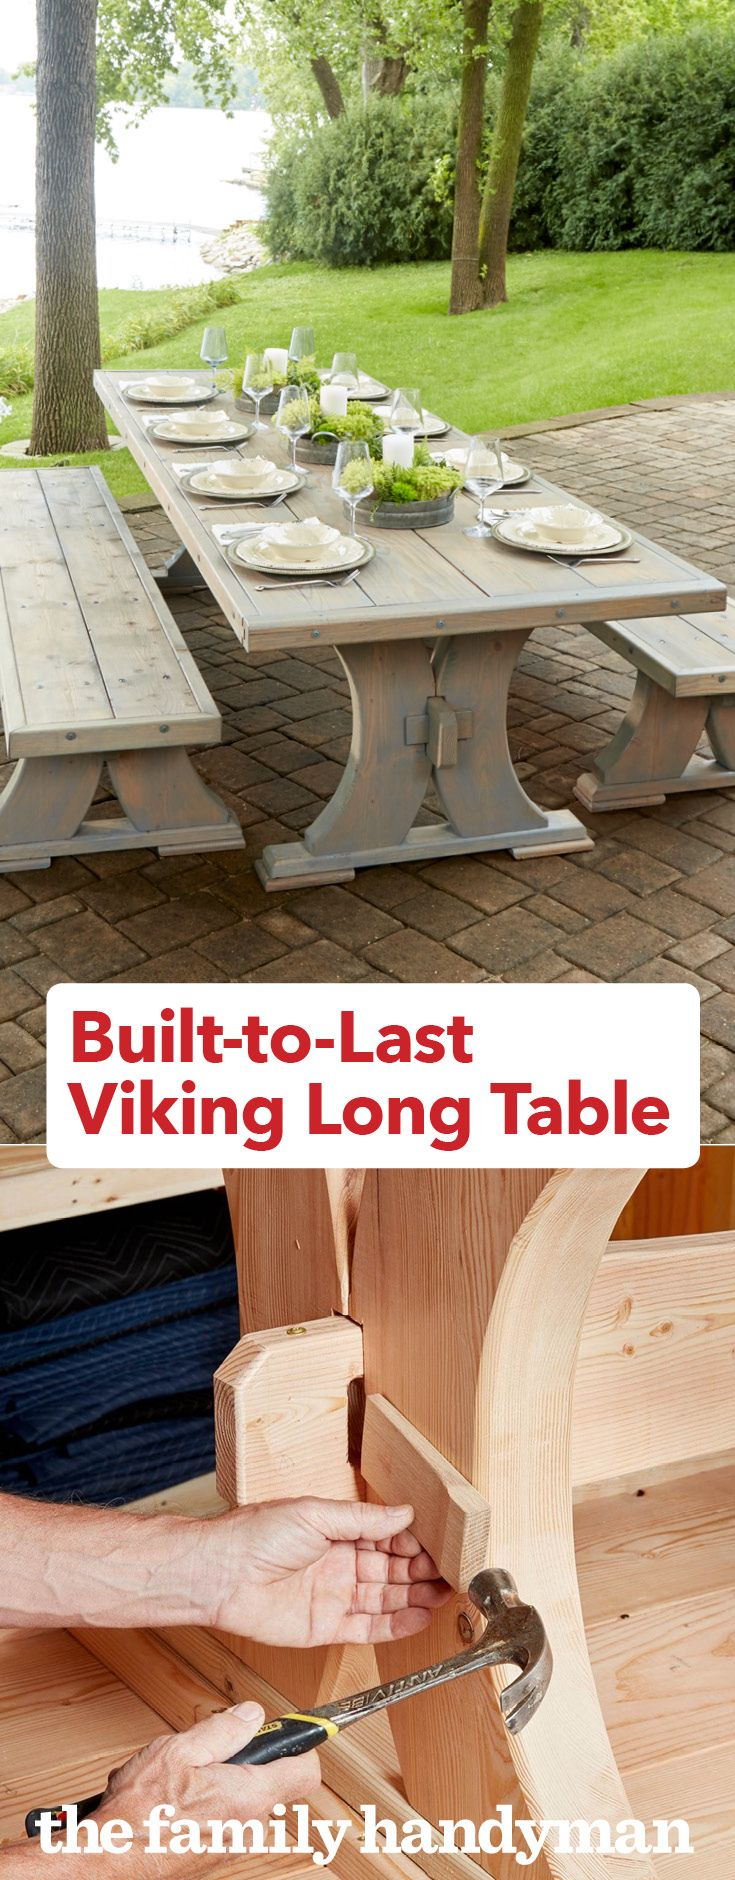 Mini Table A Langer built-to-last viking long table | woodworking projects diy